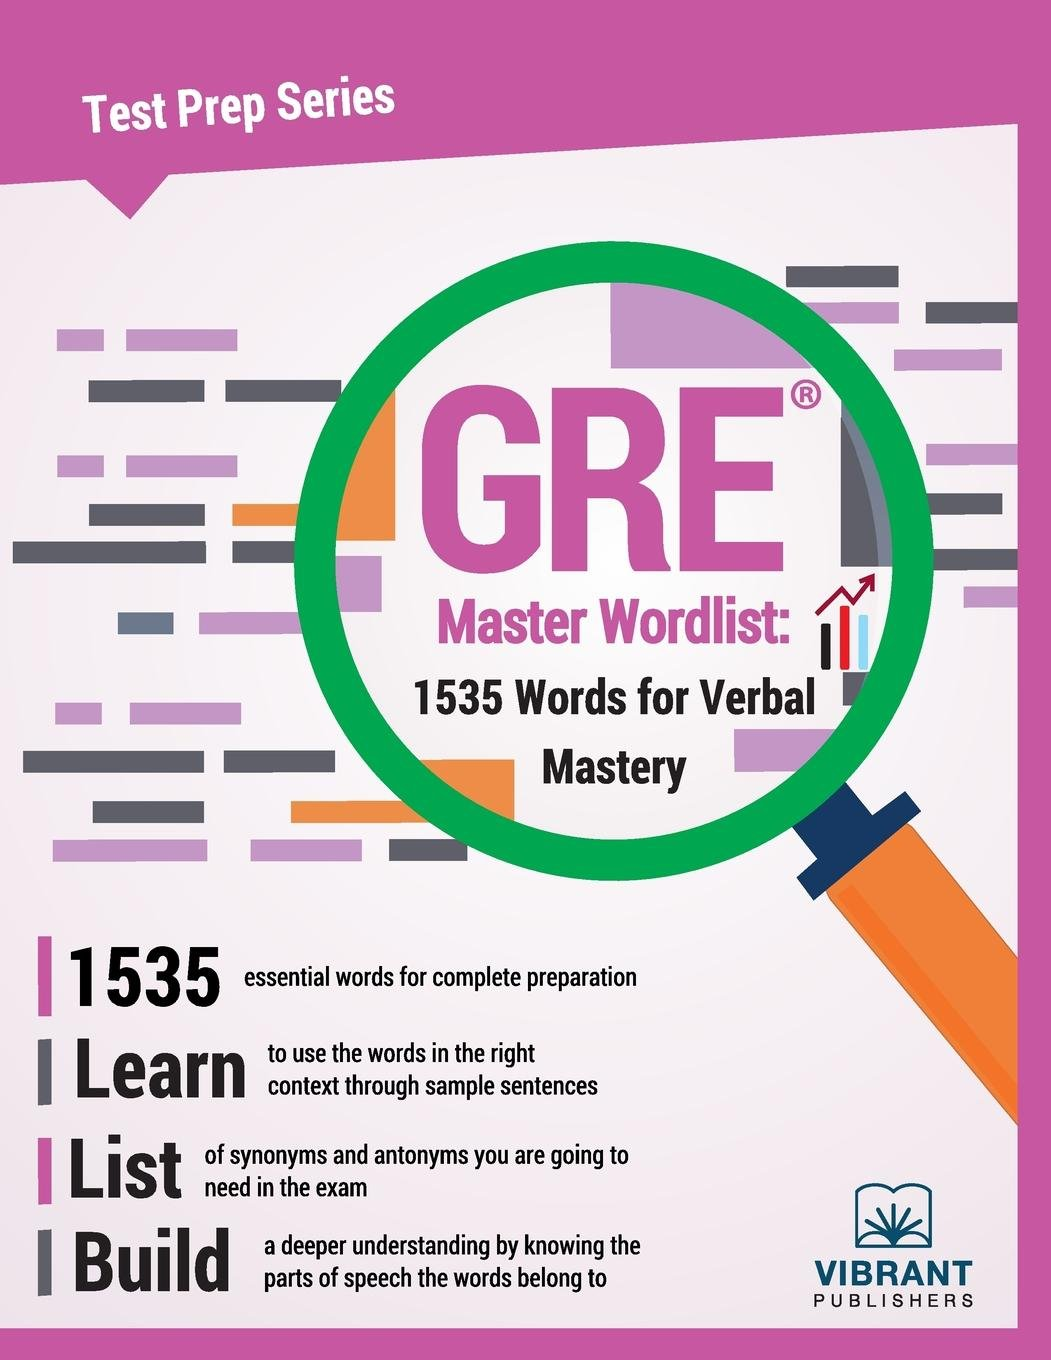 Gre Master Wordlist 1535 Words For Verbal Mastery Test Prep Series